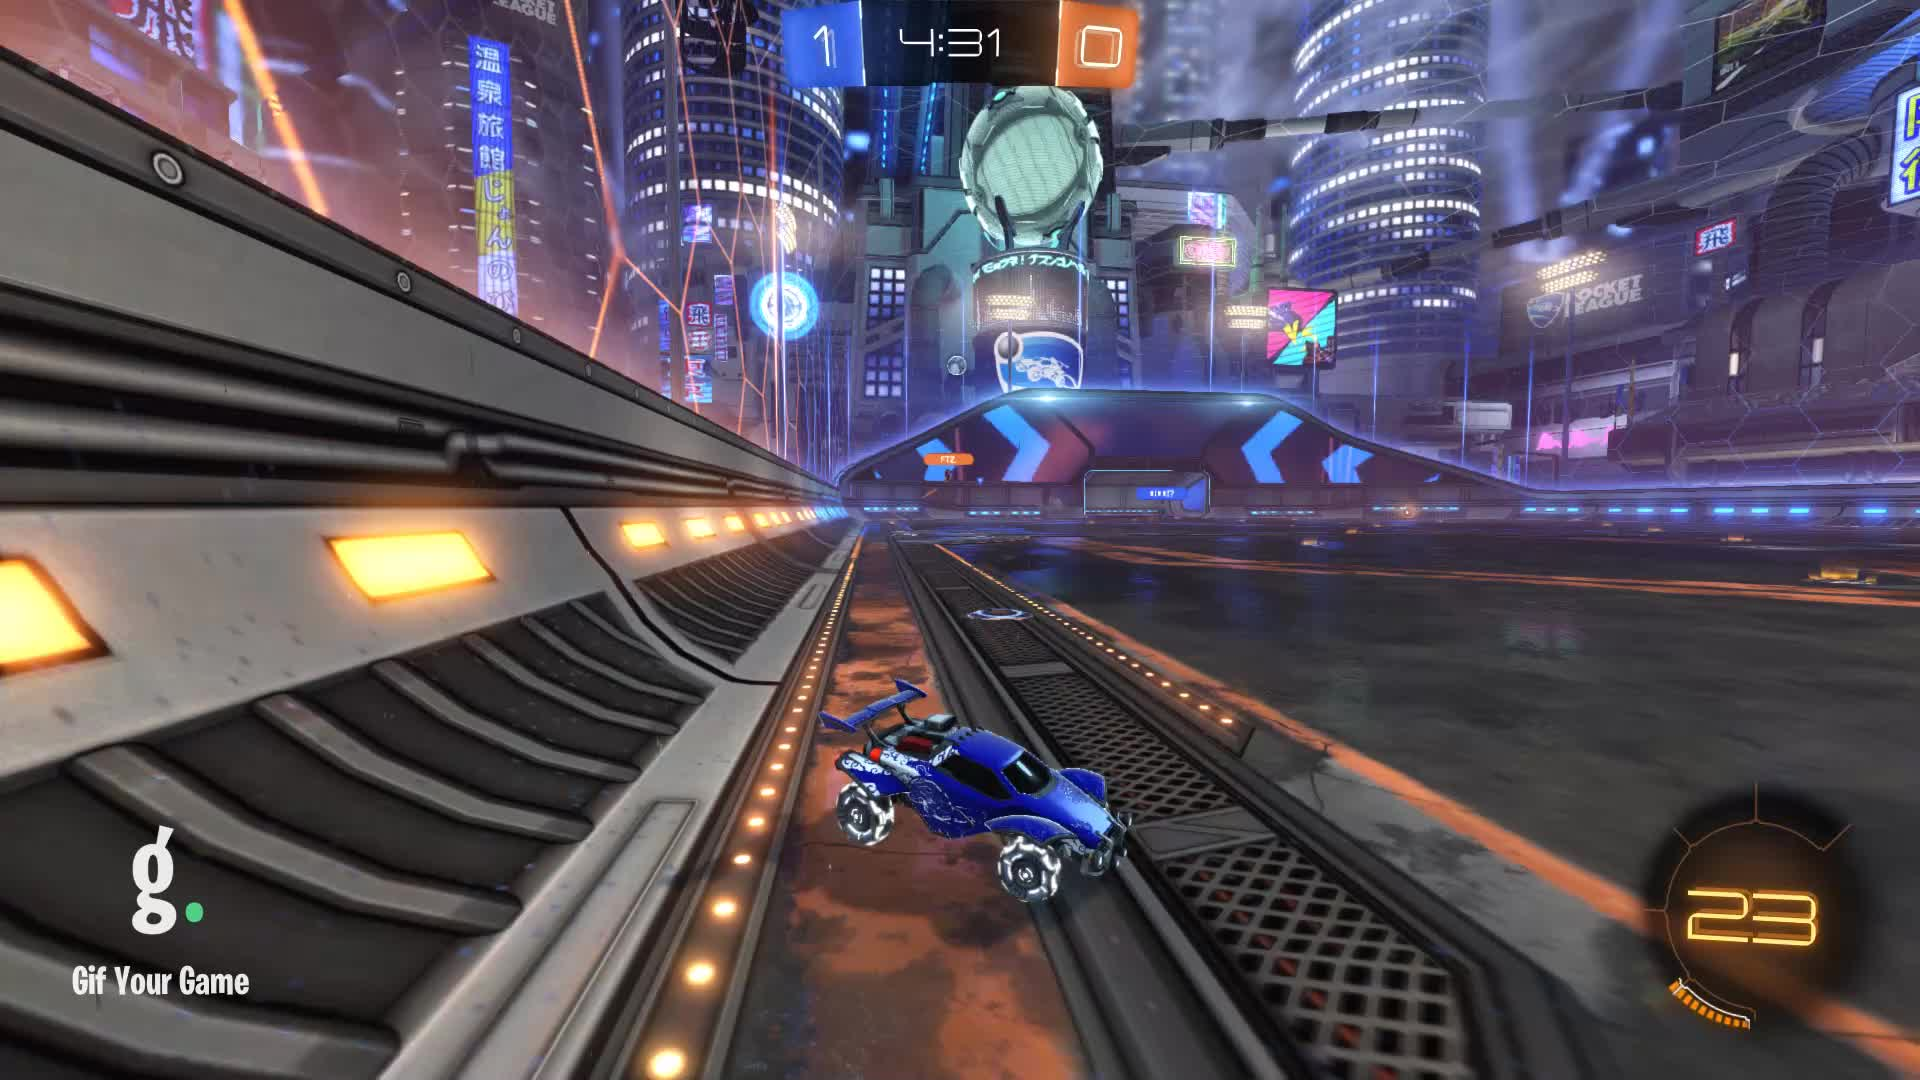 Gif Your Game, GifYourGame, Goal, Rocket League, RocketLeague, Styrrell, Goal 2: Grizzly Bare GIFs